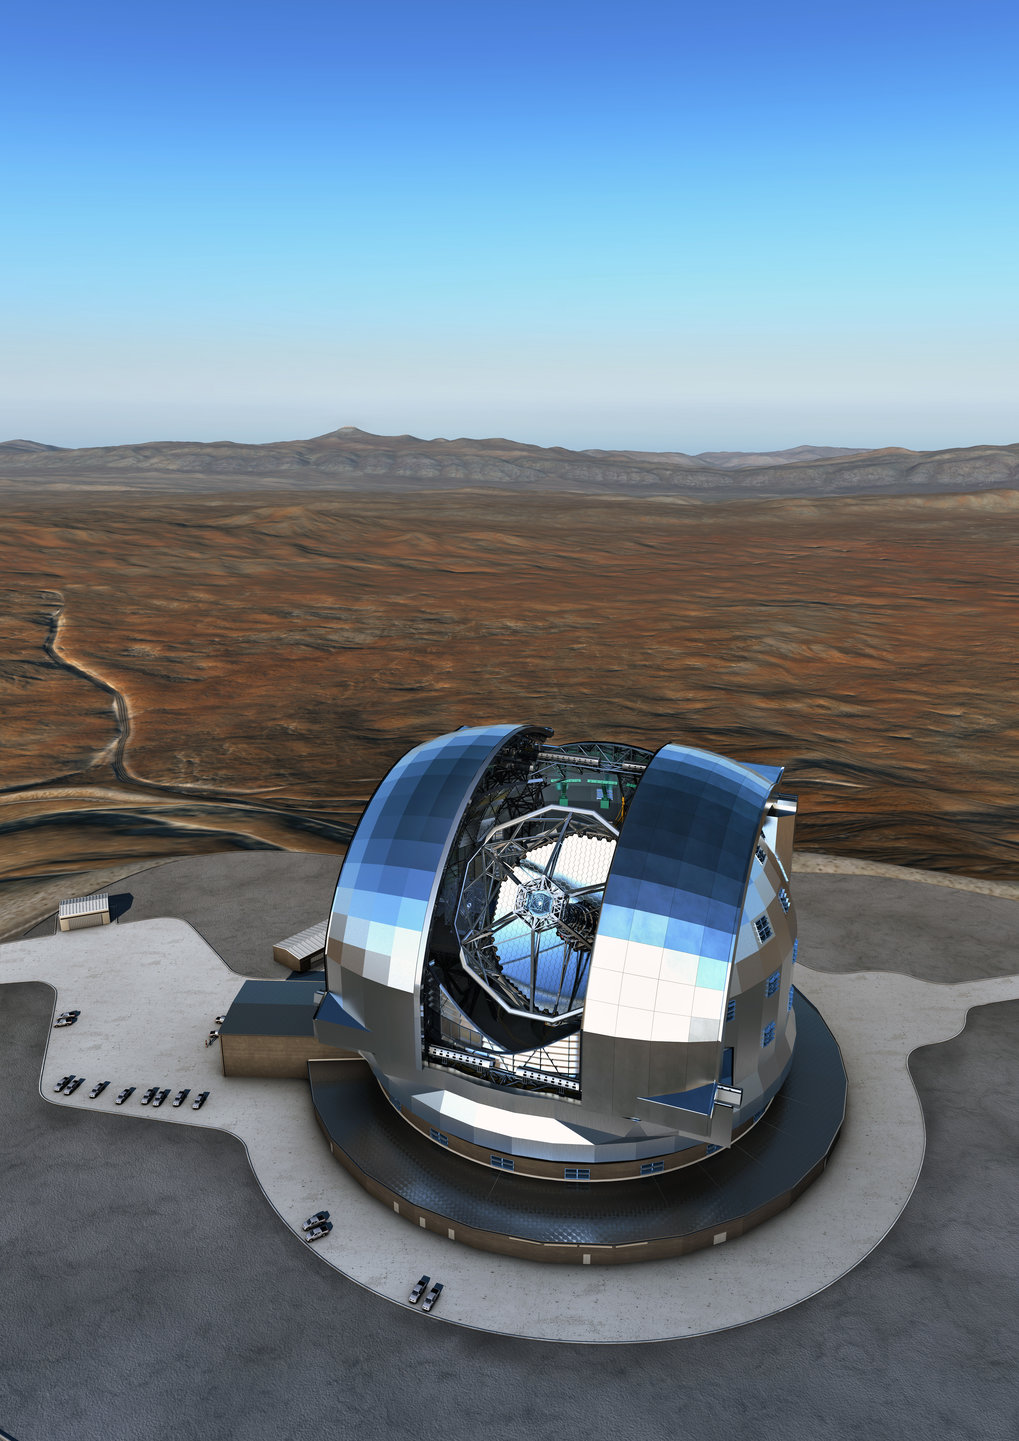 An artist's rendering of the European Extremely Large Telescope (E-ELT) in the Chilean Atacama Desert. Construction started in 2014 and first light is targeted for 2024.